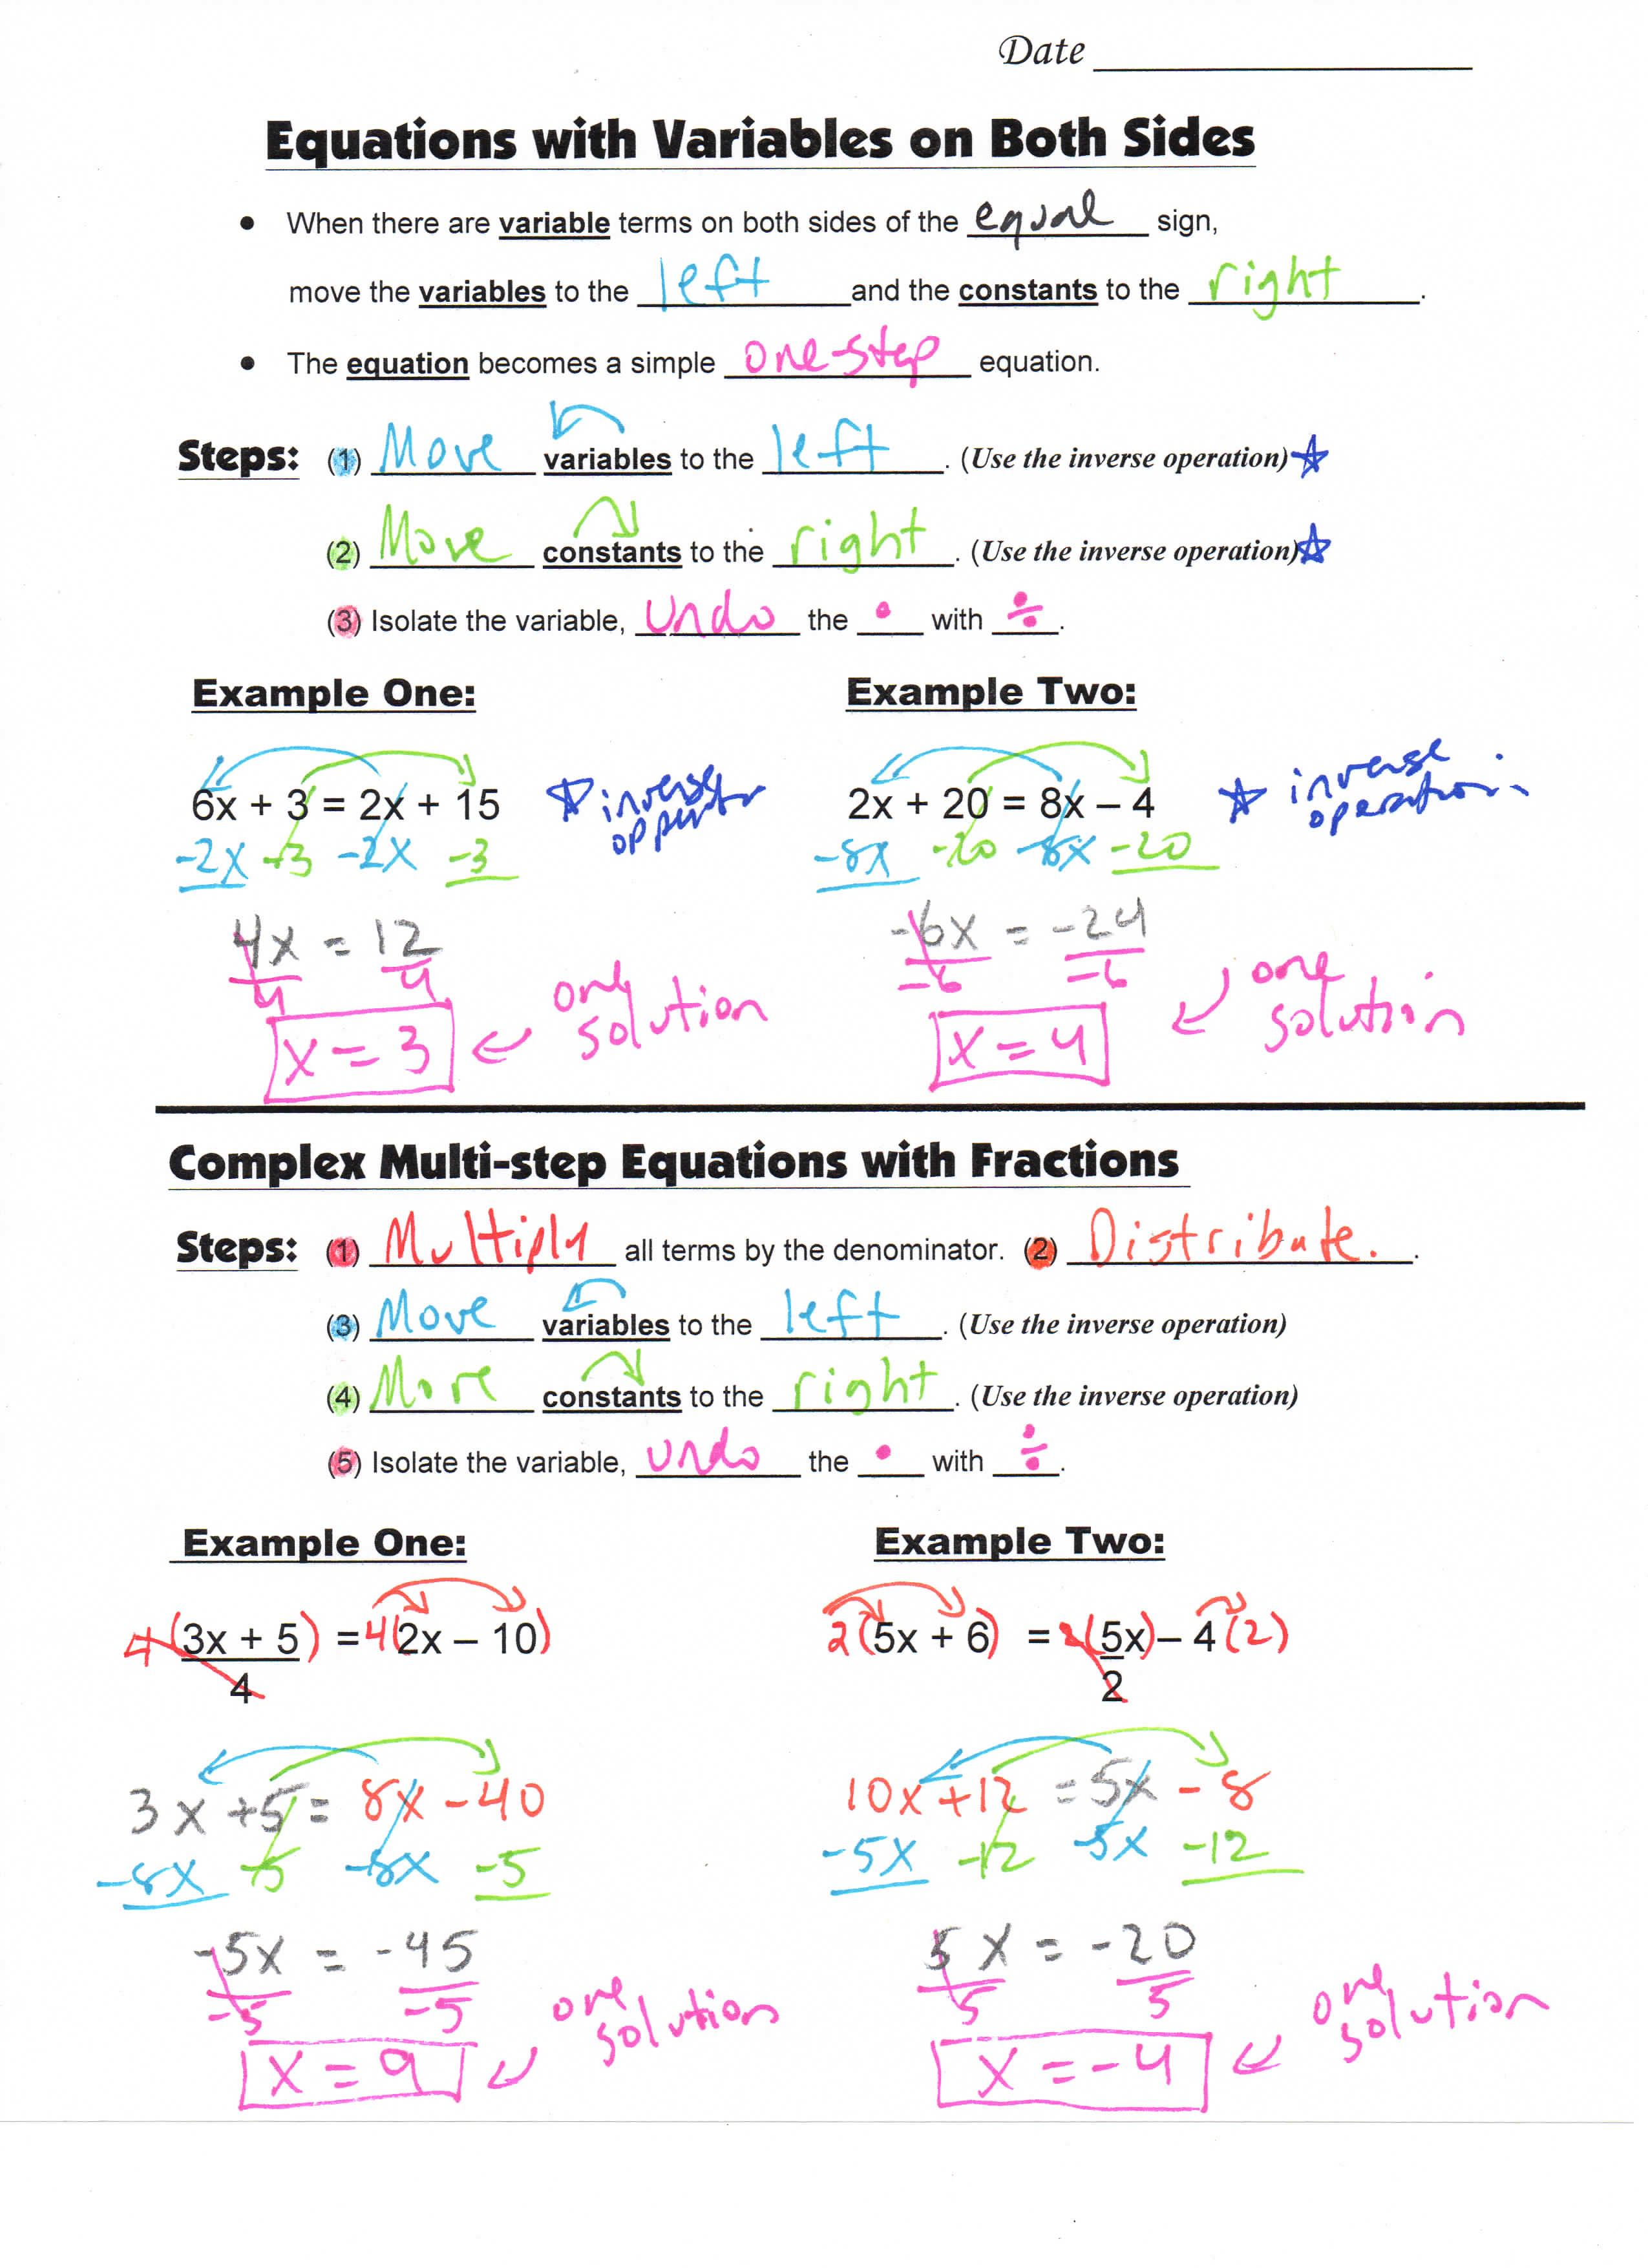 S Teacherspayteachers Product Math 8 Guided Interactive Math Notebook Page